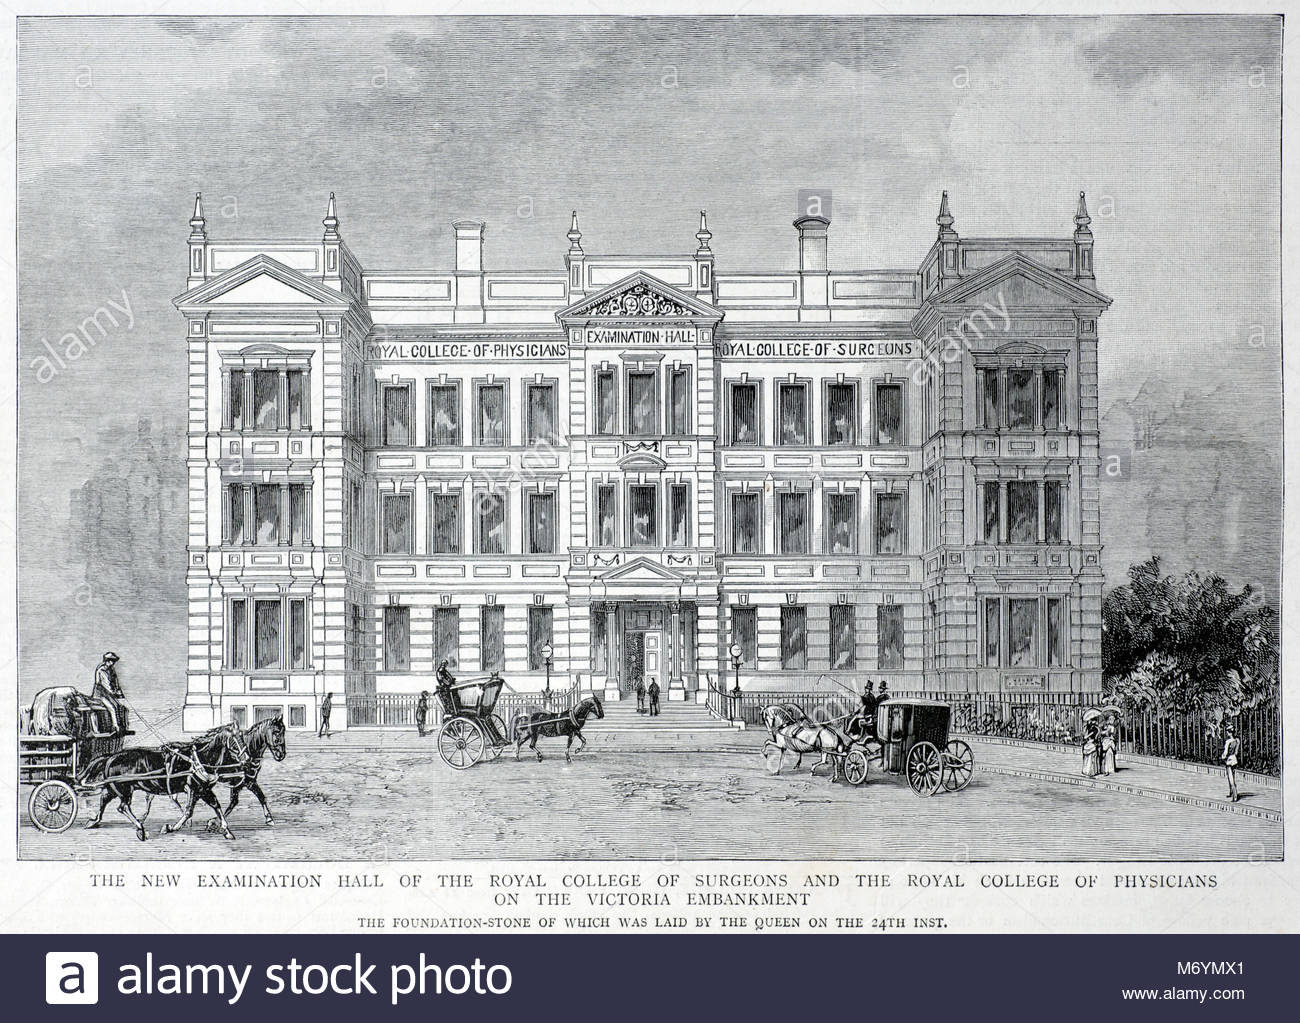 The new Examination Hall of the Royal College of Surgeons and the Royal College of Physicians on the Victoria Embankment - Stock Image